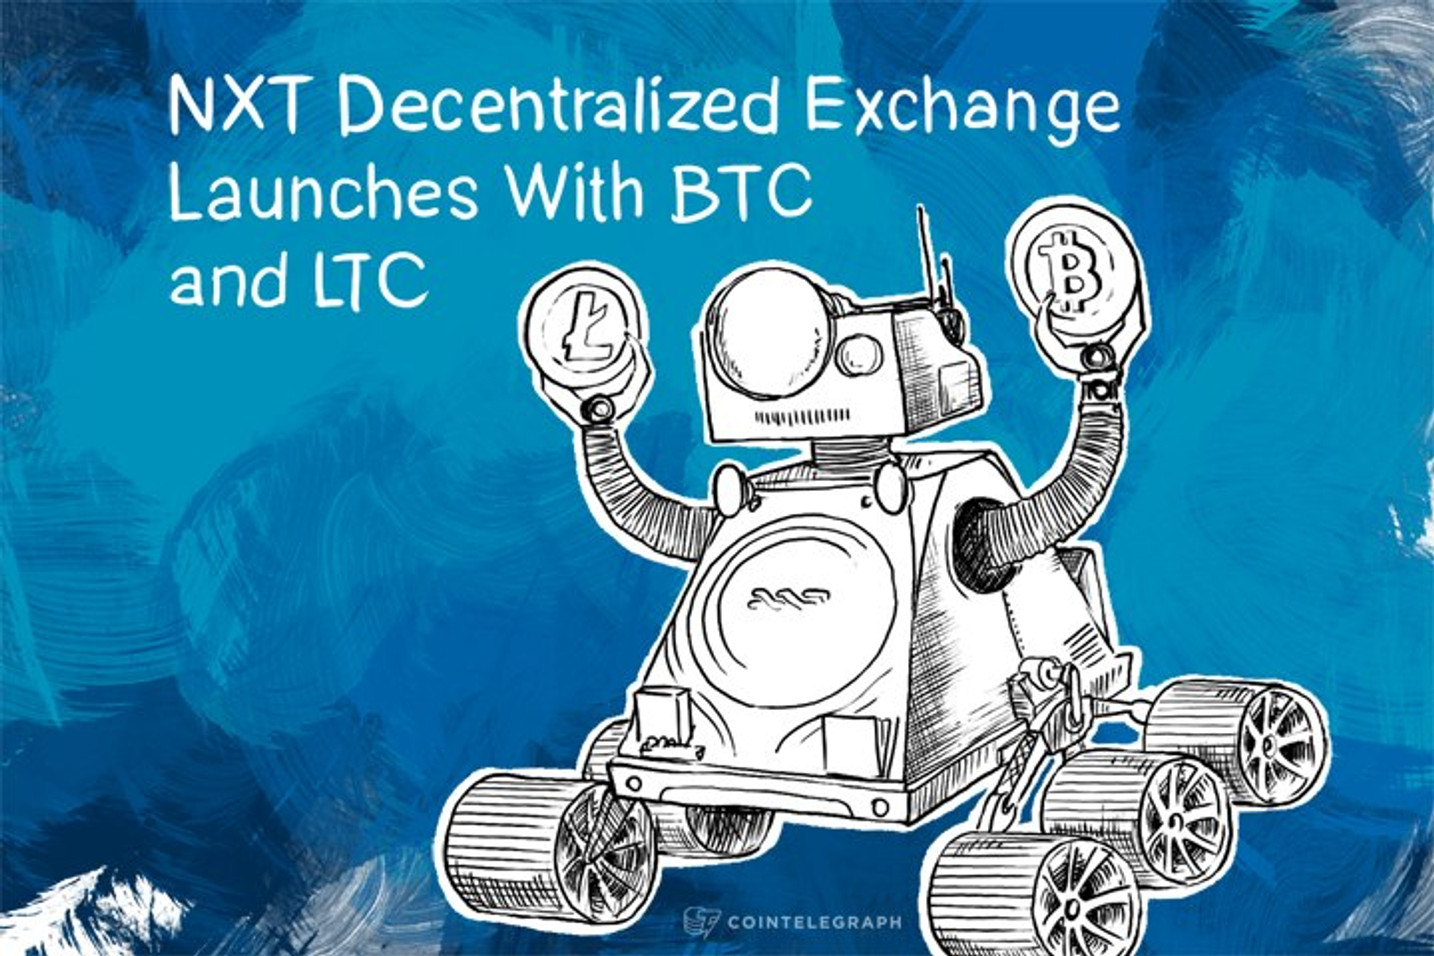 NXT Decentralized Exchange Launches With BTC and LTC